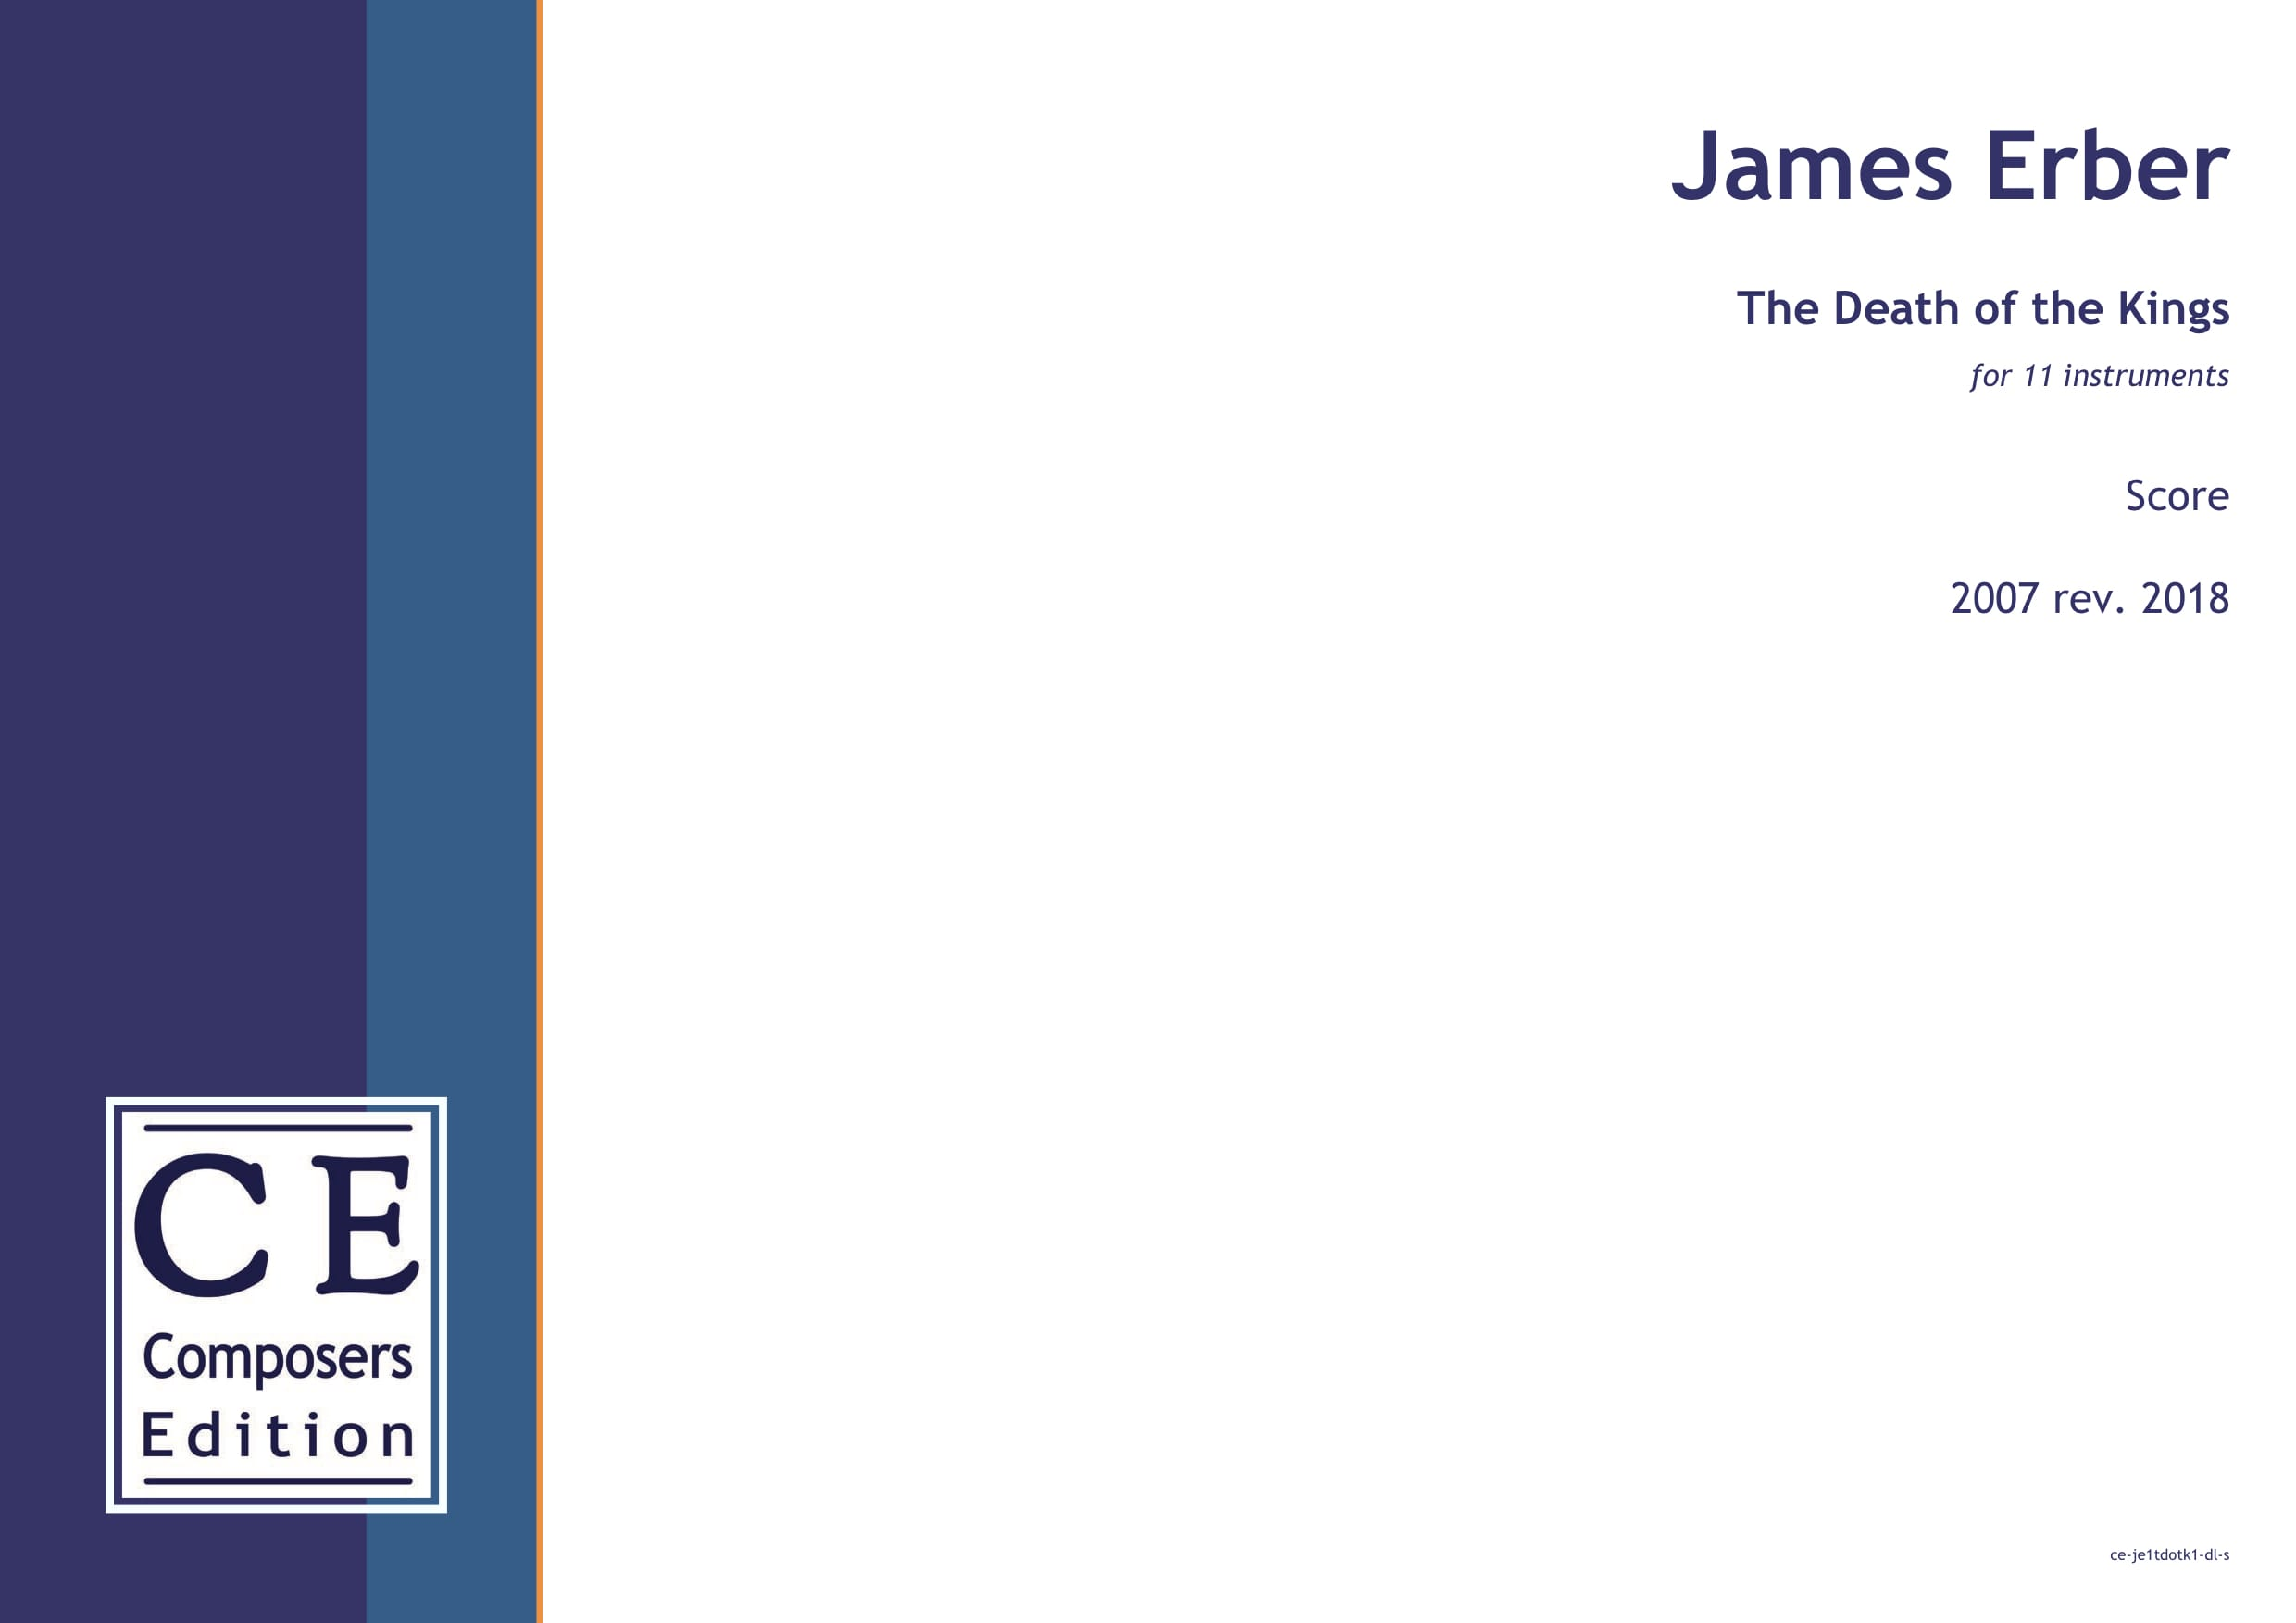 James Erber: The Death of the Kings for 11 instruments